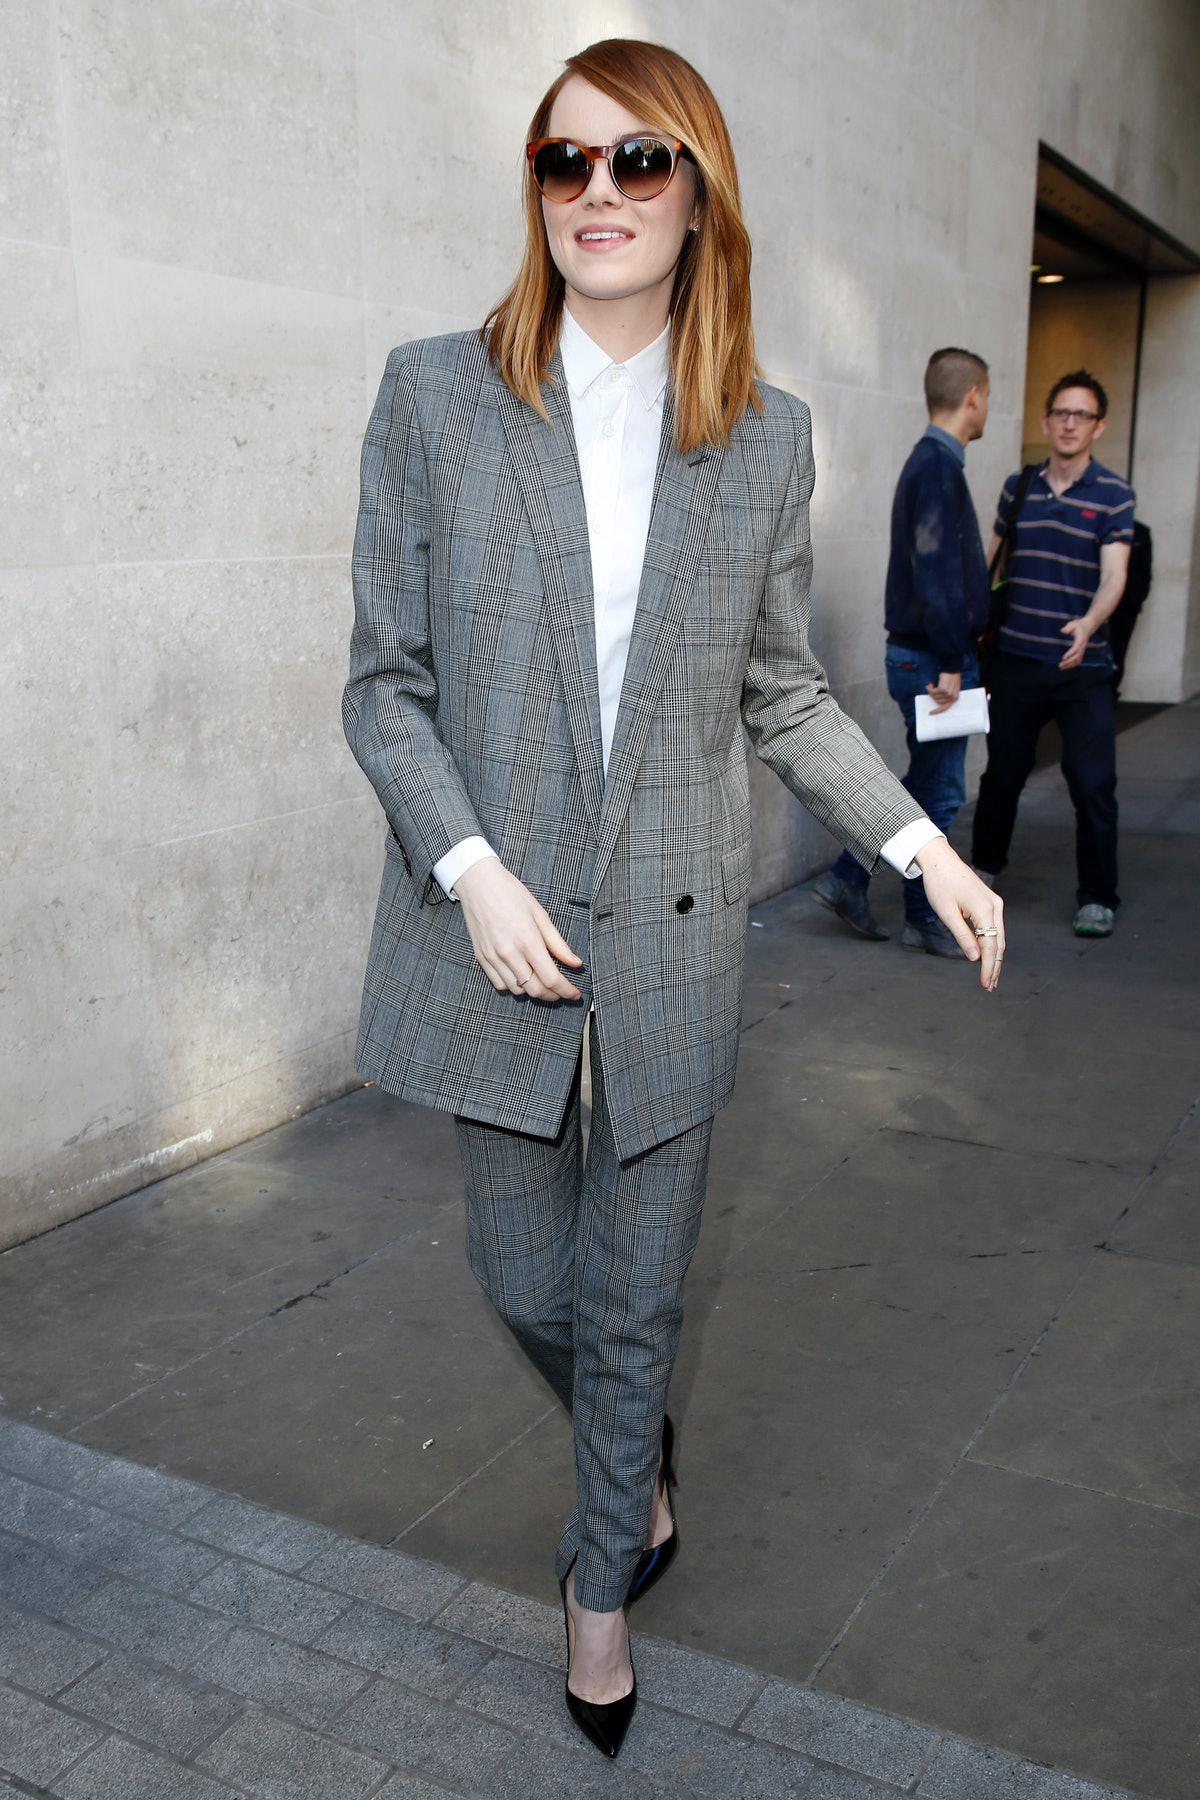 Emma Stone wearing a suit